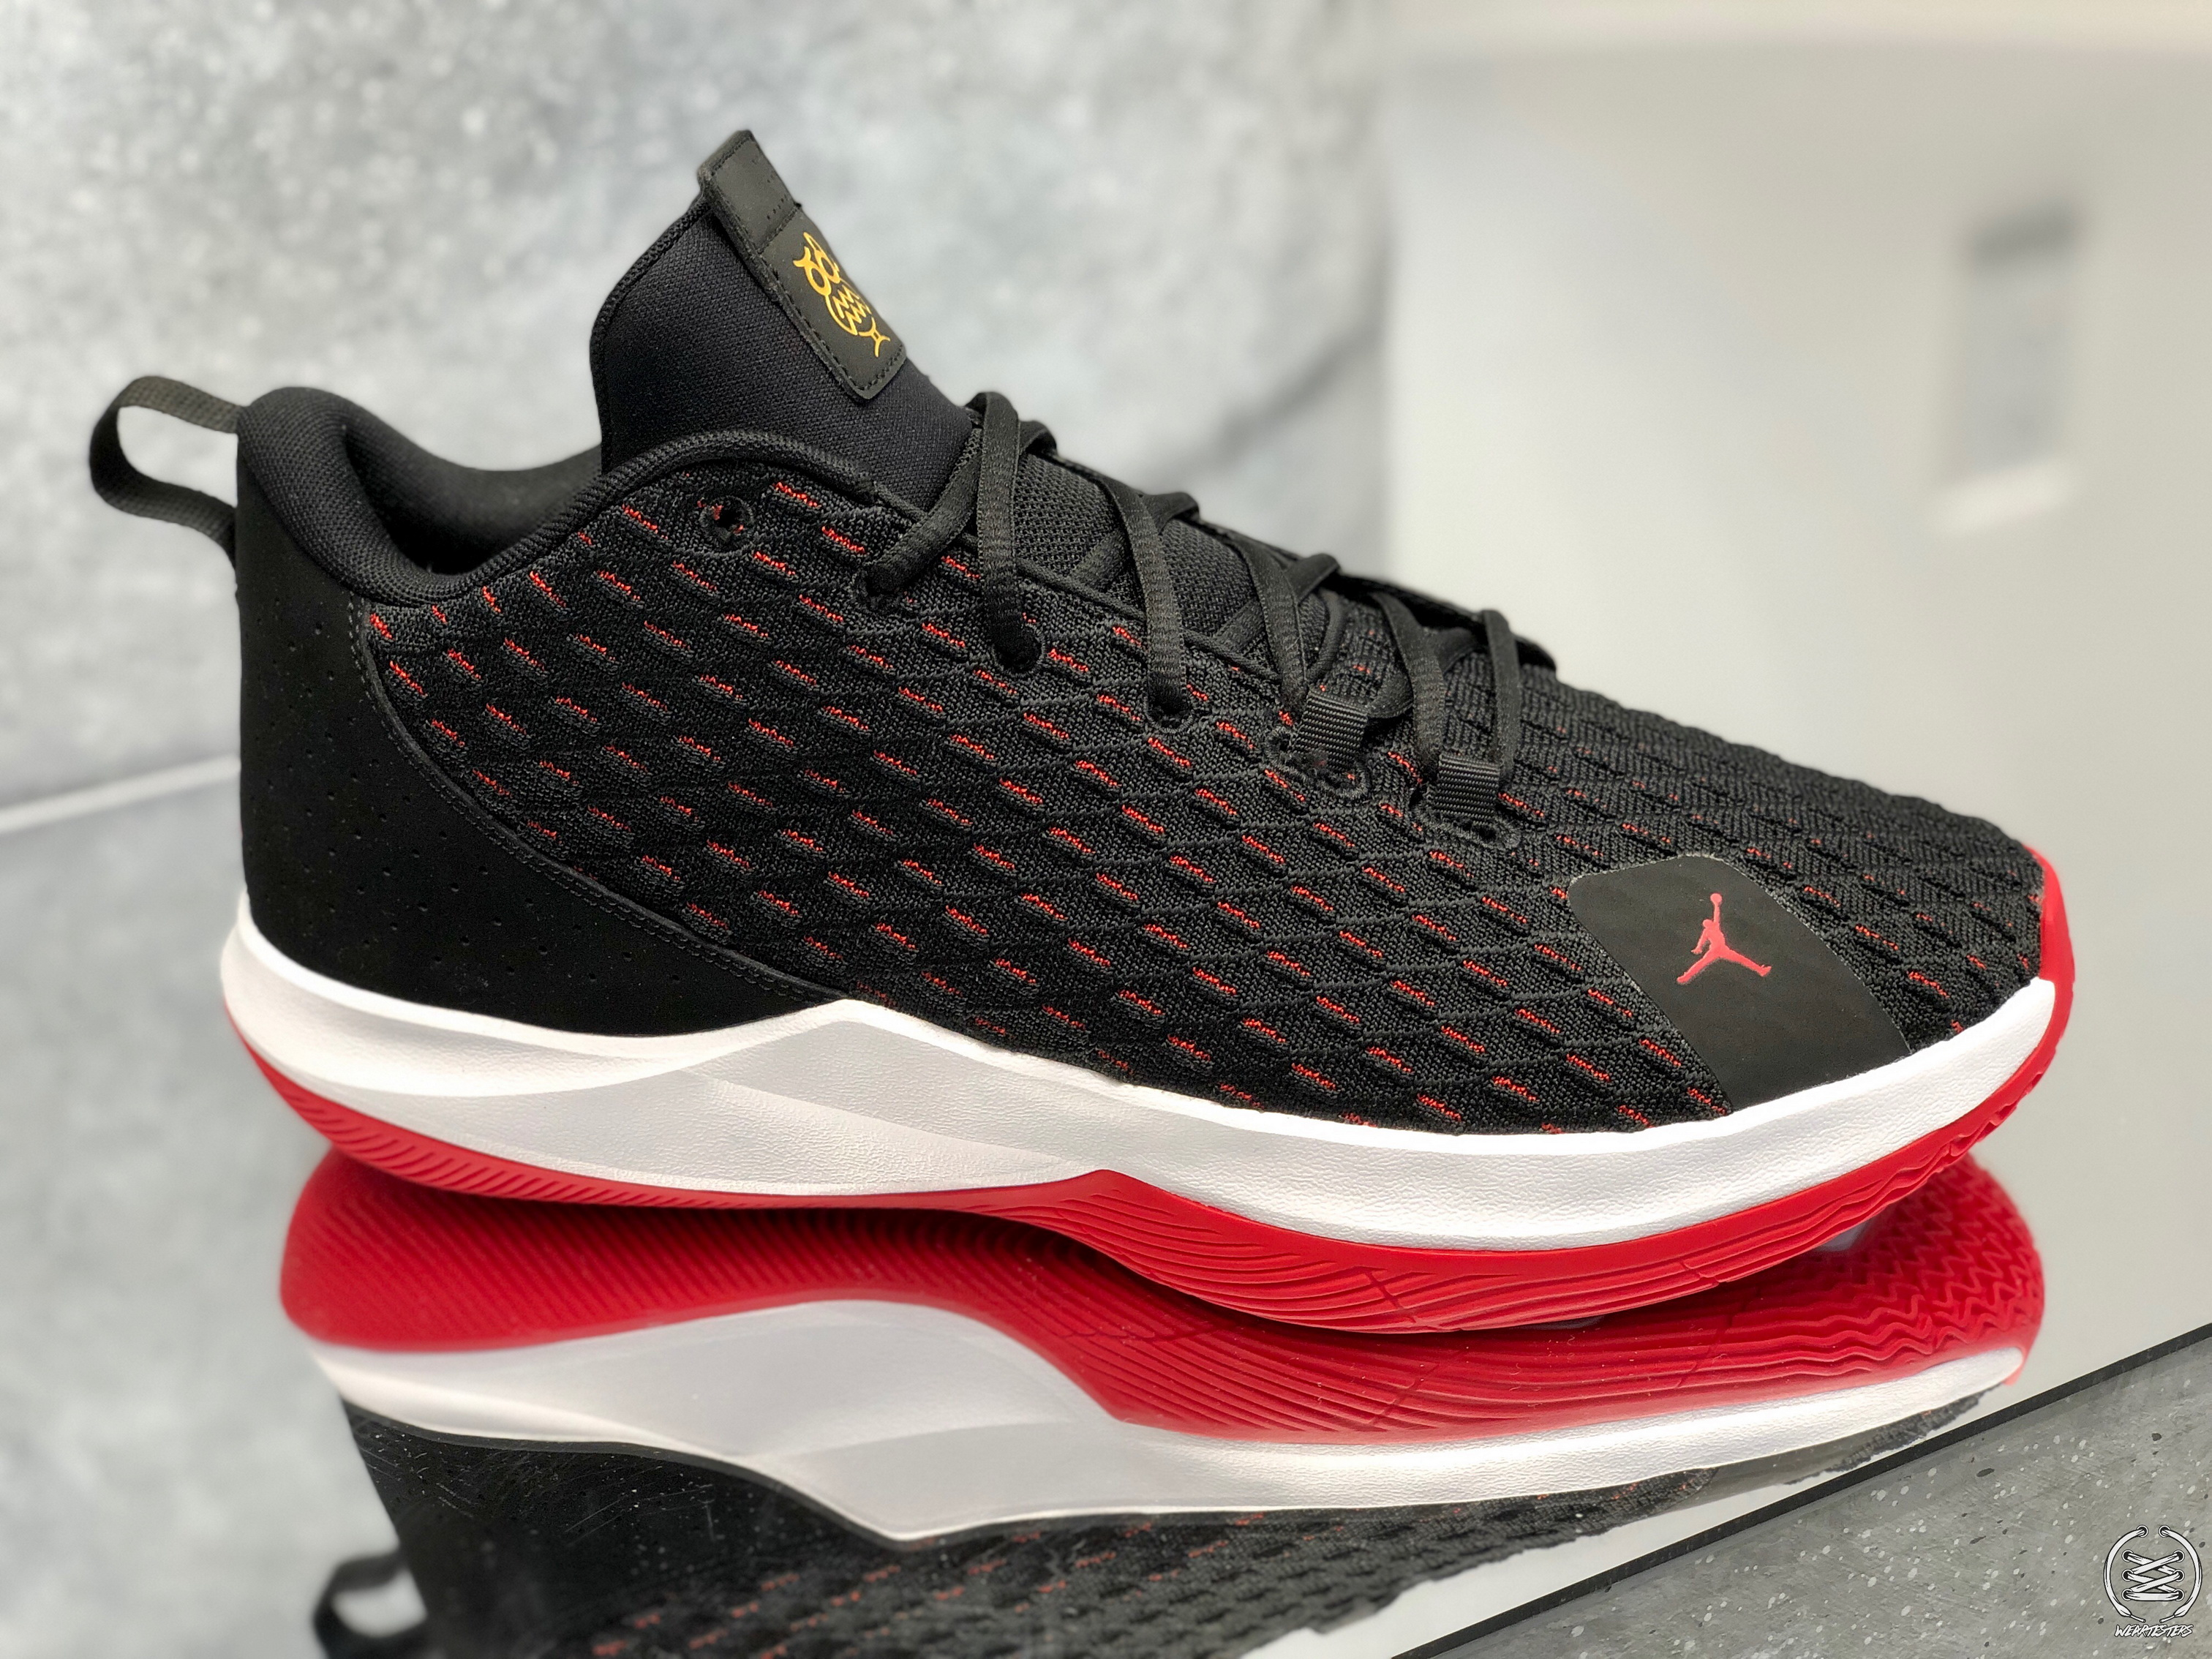 sale retailer bd638 05b87 A Detailed Look at the Upcoming Jordan CP3.12 - WearTesters